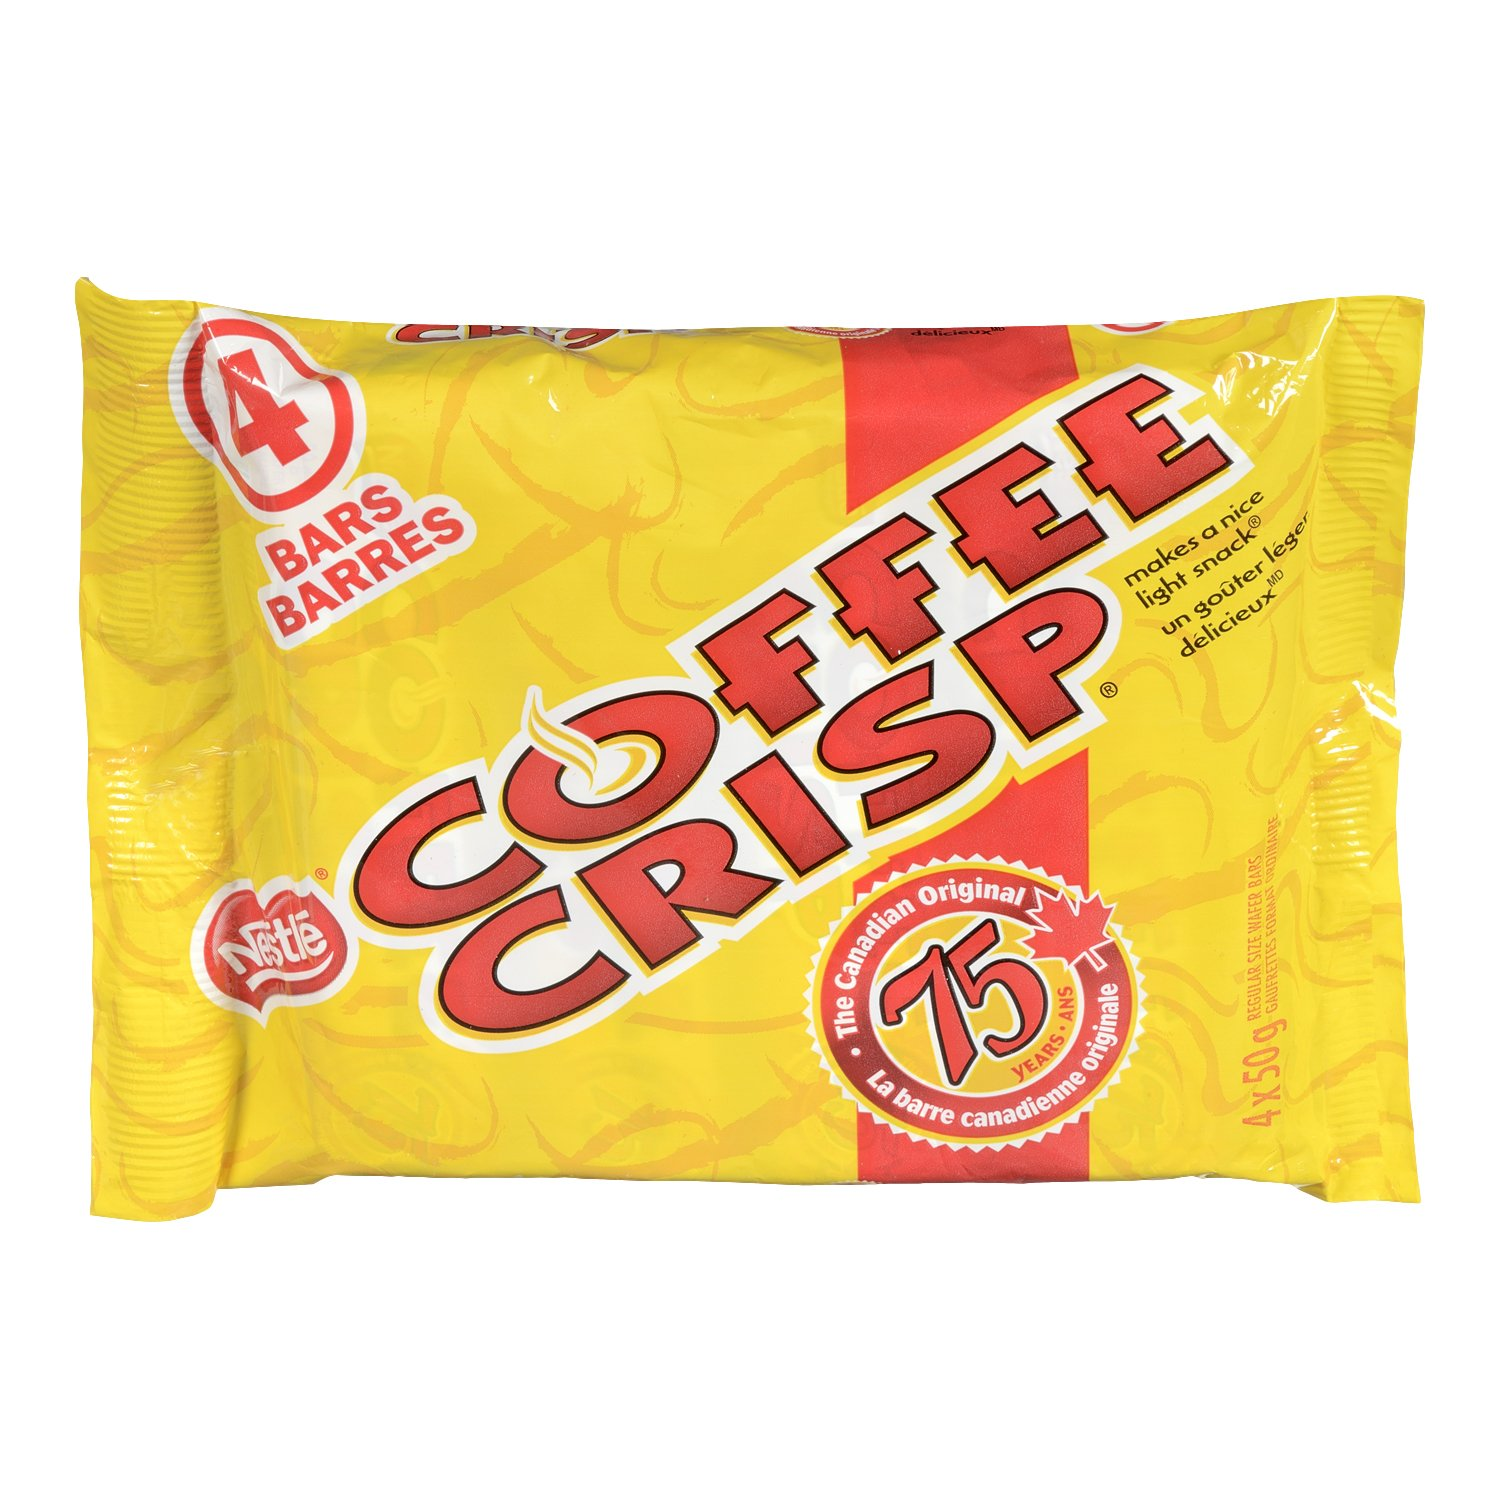 Canada Candy Coffee Crisp Chocolate Bar 4 x 50gram Bars. Imported from Canada.